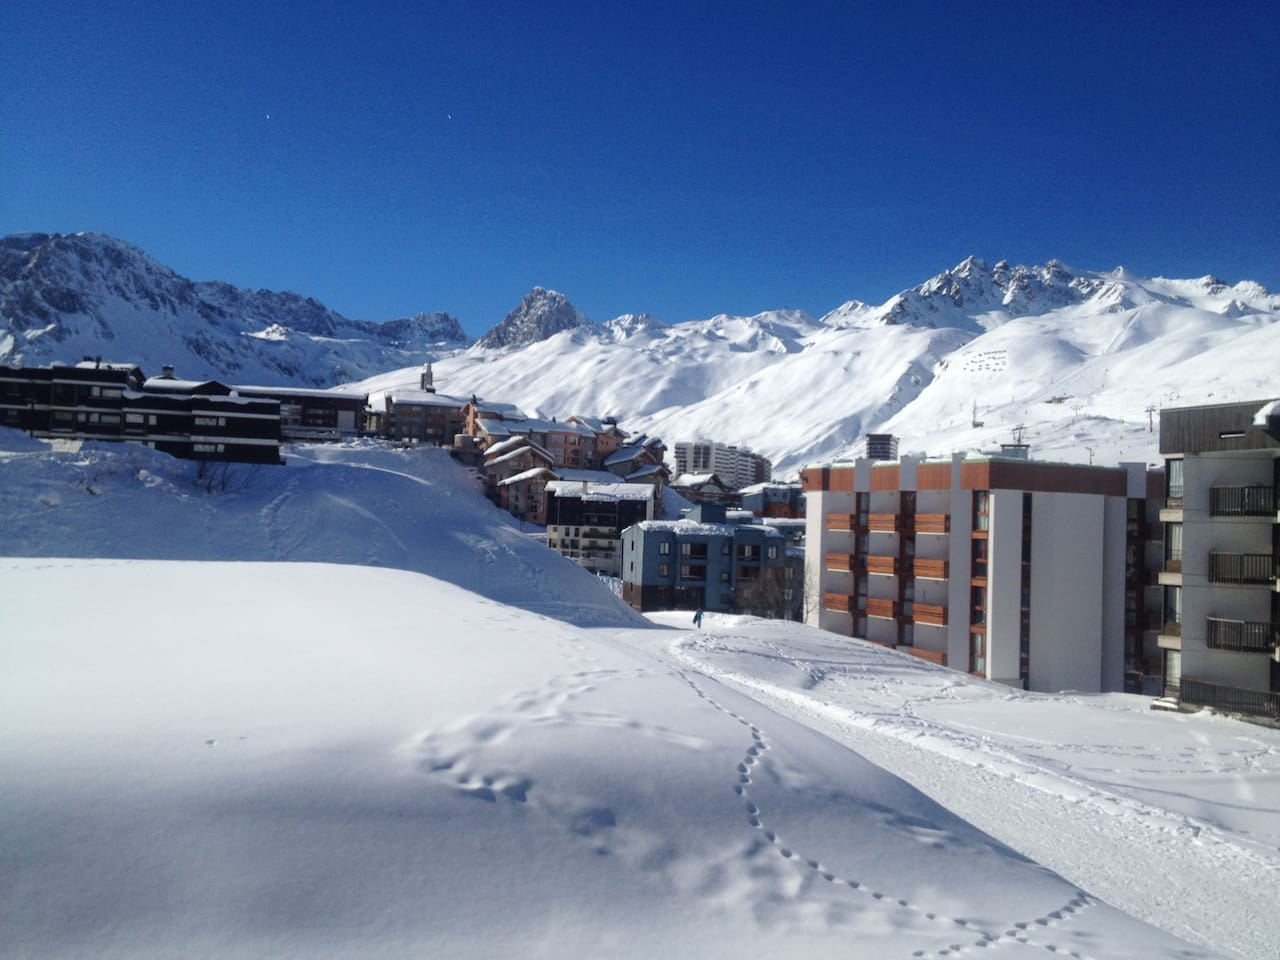 View from the balcony in Winter - Quick access ski track on the right